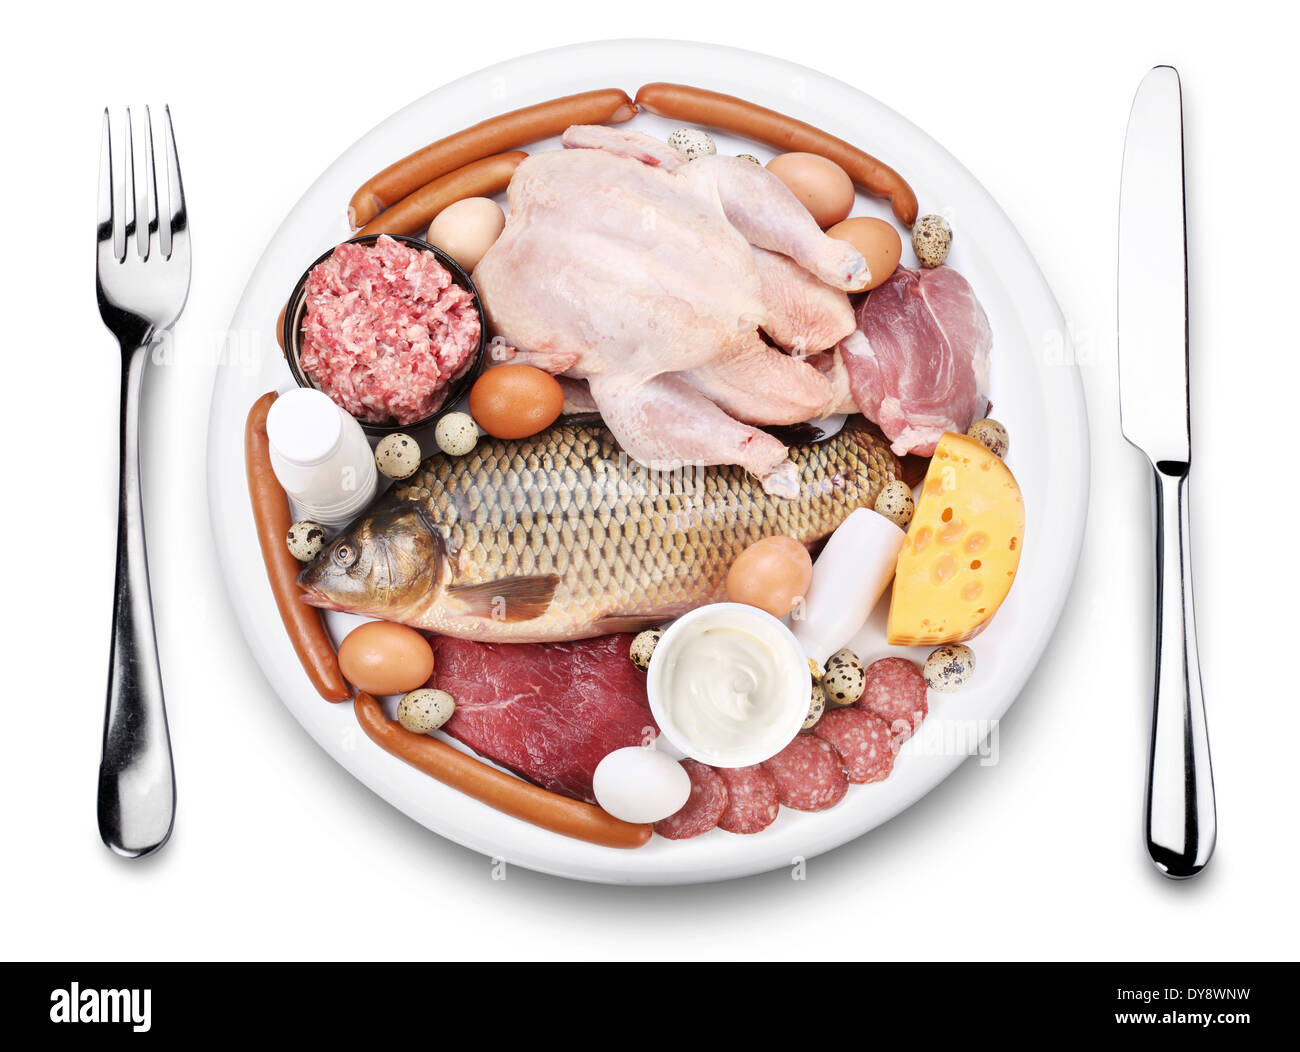 Raw meat and dairy products on a plate. View from above, on a white background. - Stock Image